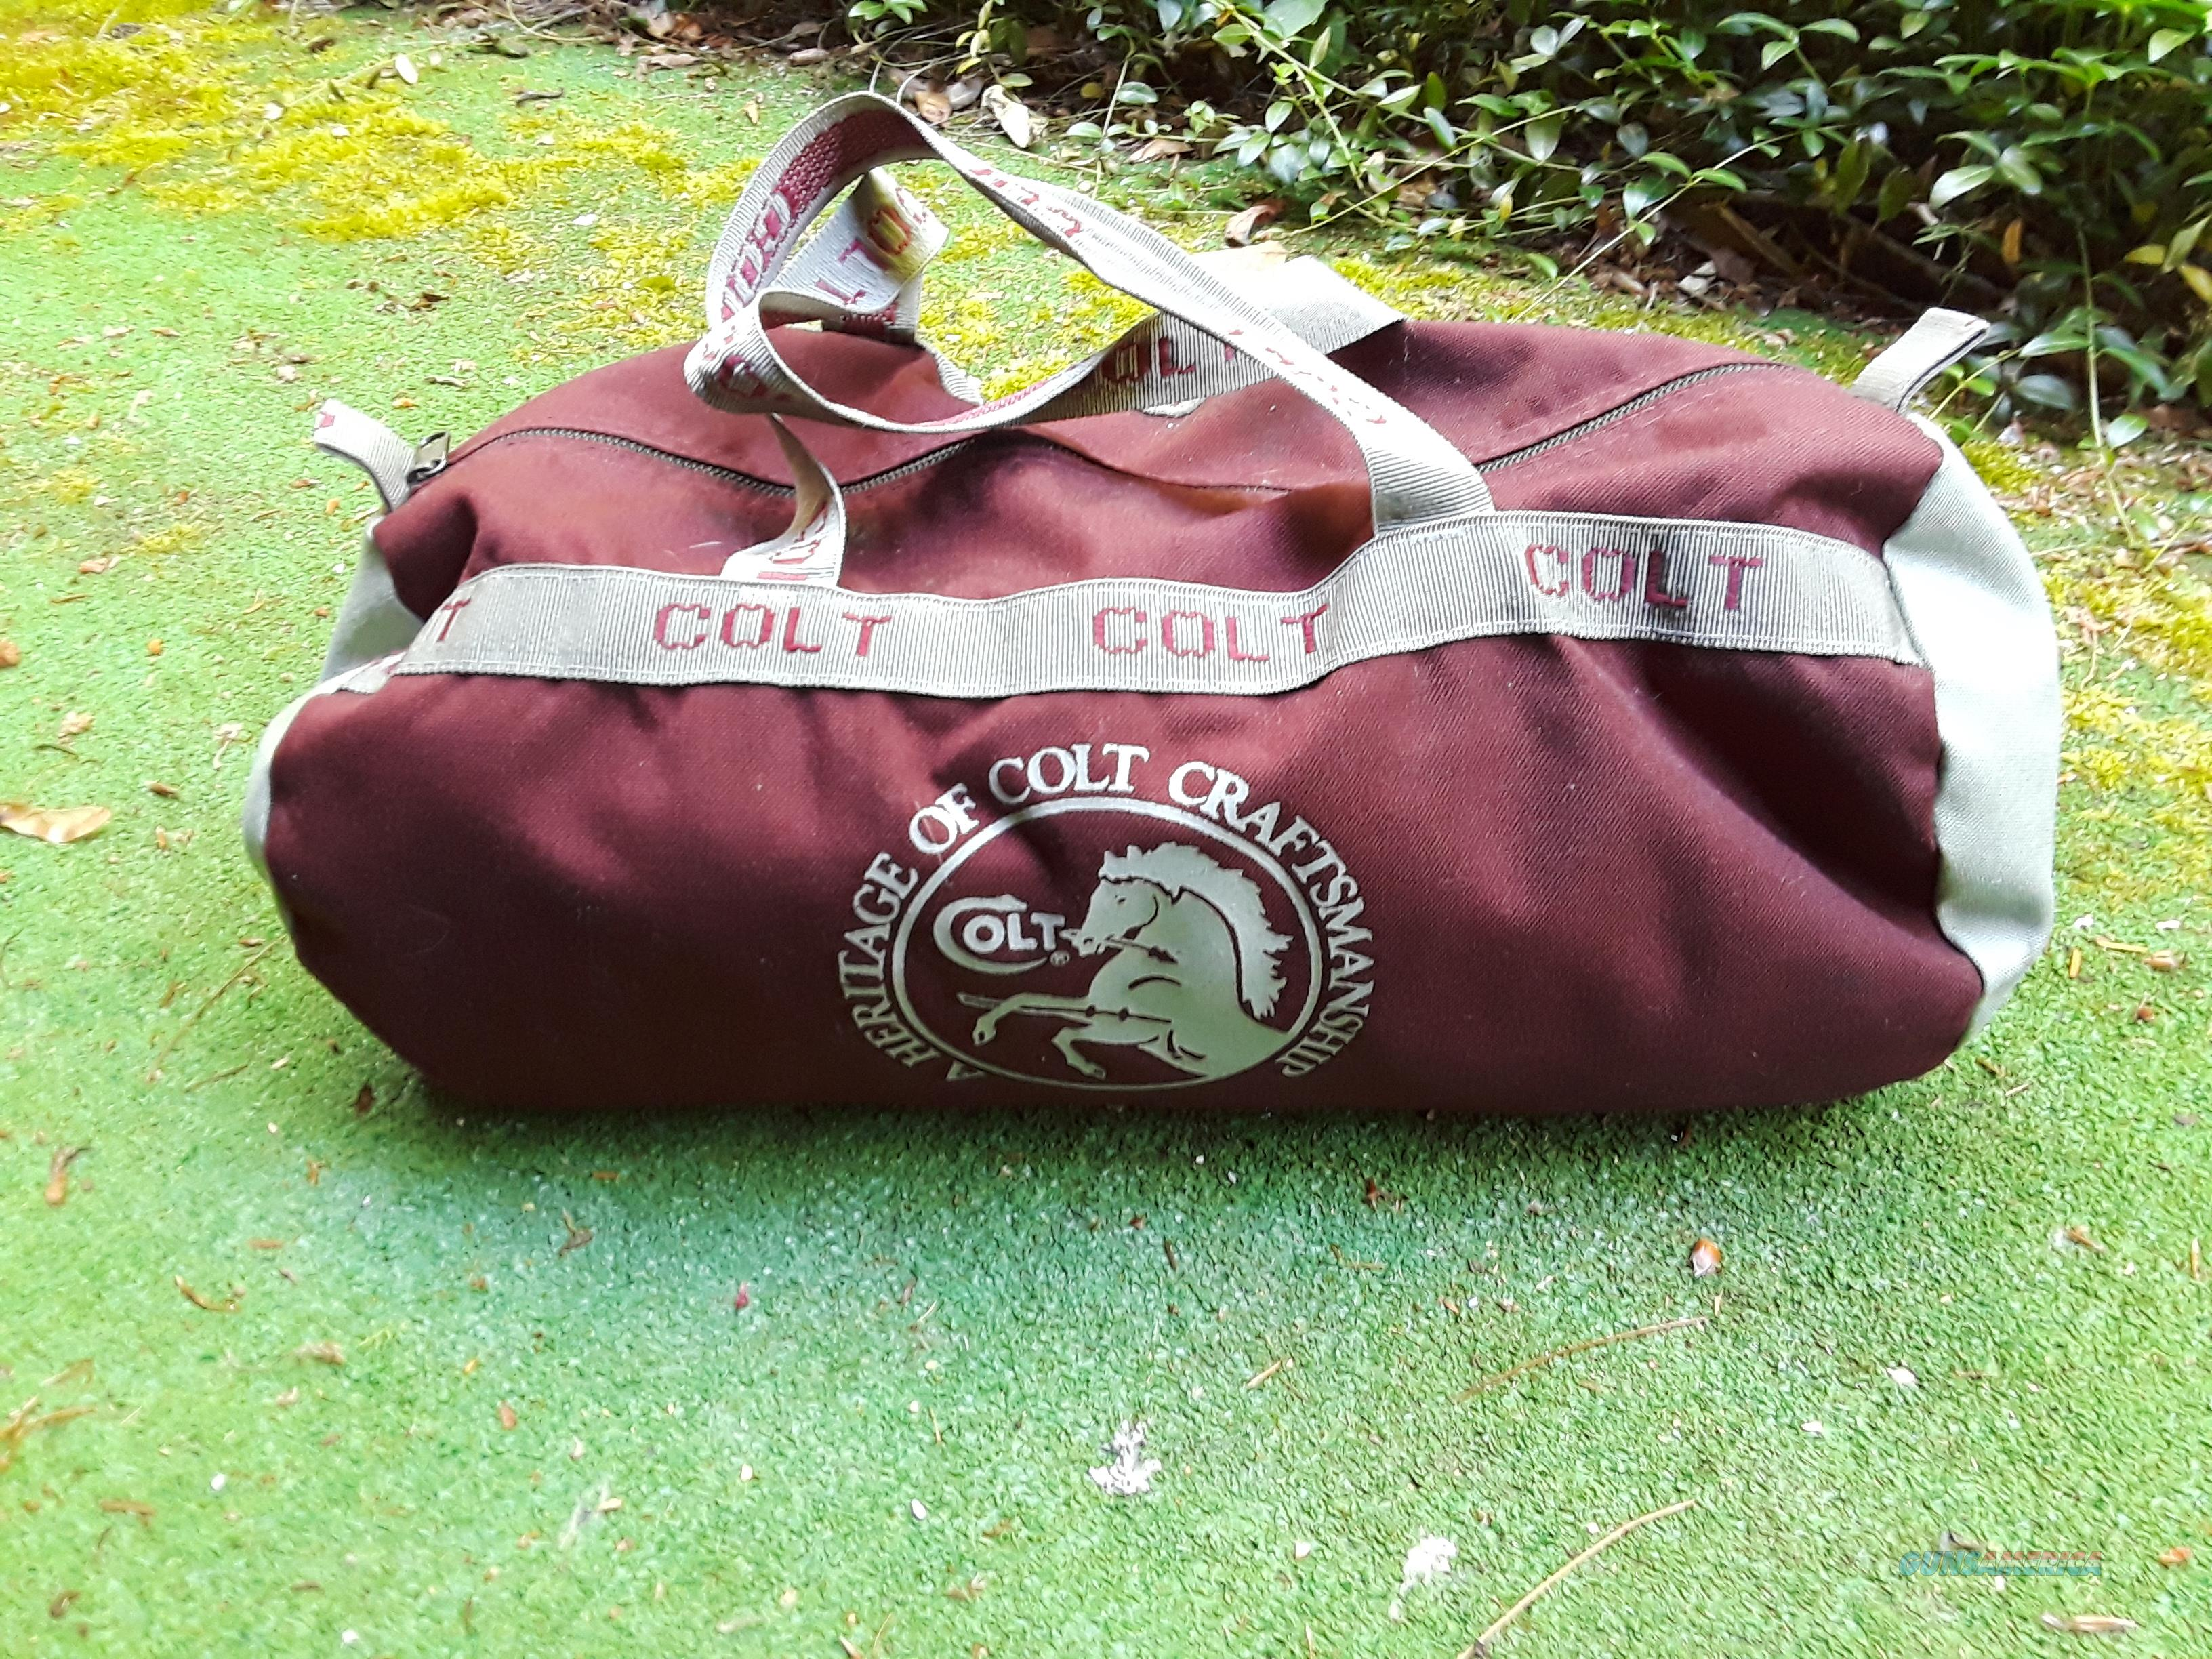 Colt Firearms Duffle Bag 1987  Non-Guns > Logo & Clothing Merchandise